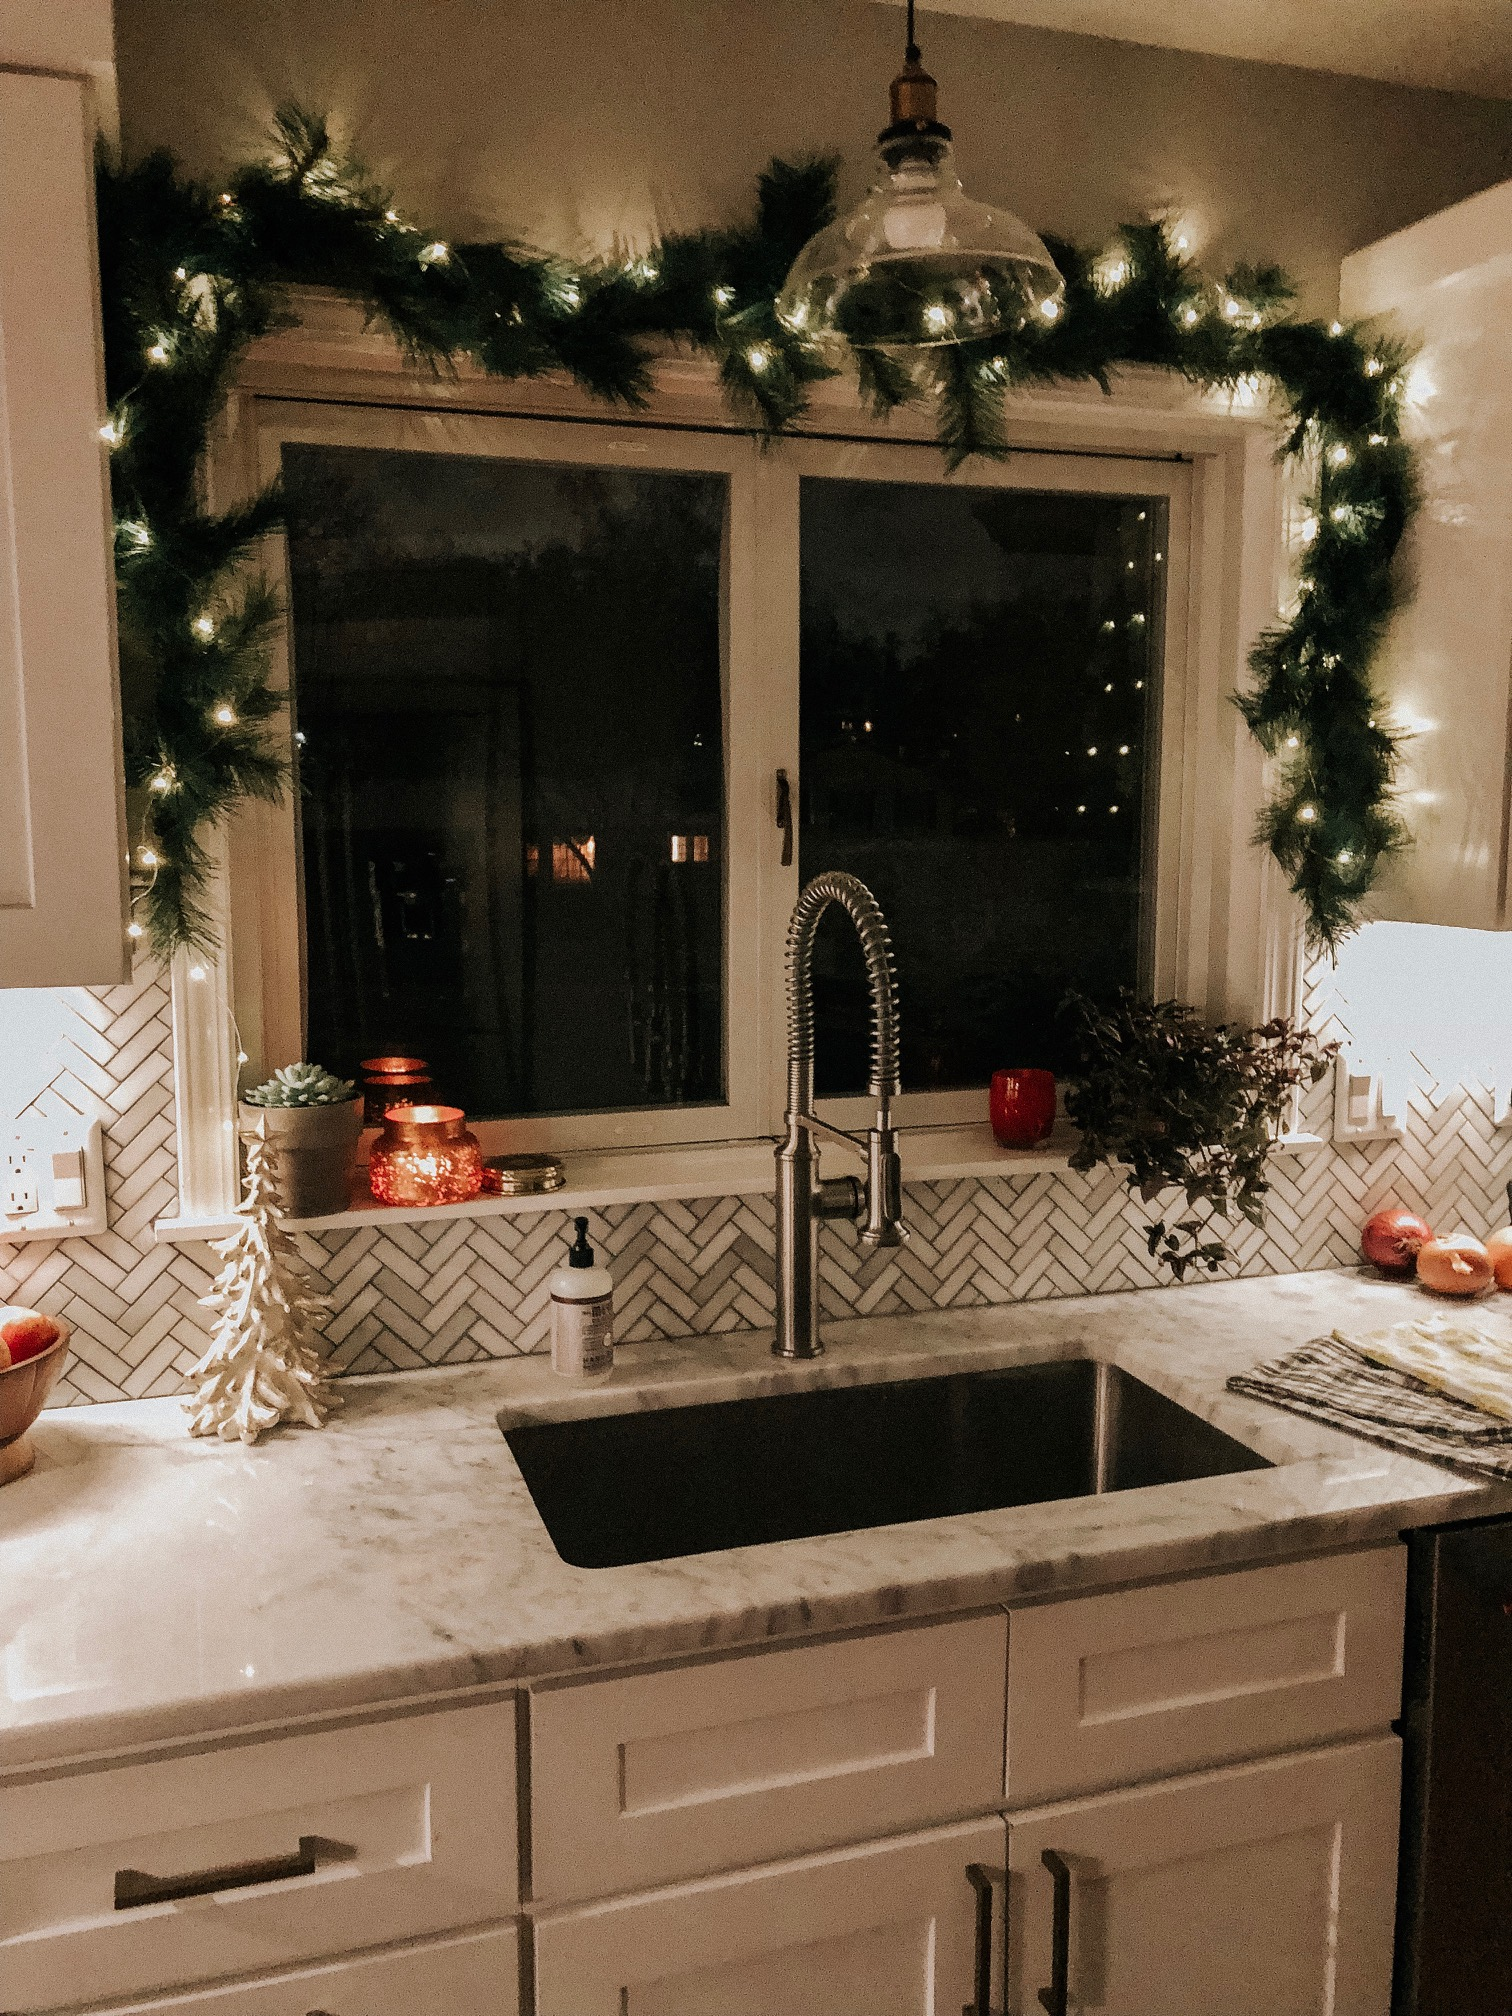 Holiday Decor Tips and Ideas | Daily Splendor Life and Style Blog | Kitchen Decor, garland, twinkle lights, holidays, christmas #kitcheninspo #cozyhome #christmaswindow #christmasgarland #christmasdecor